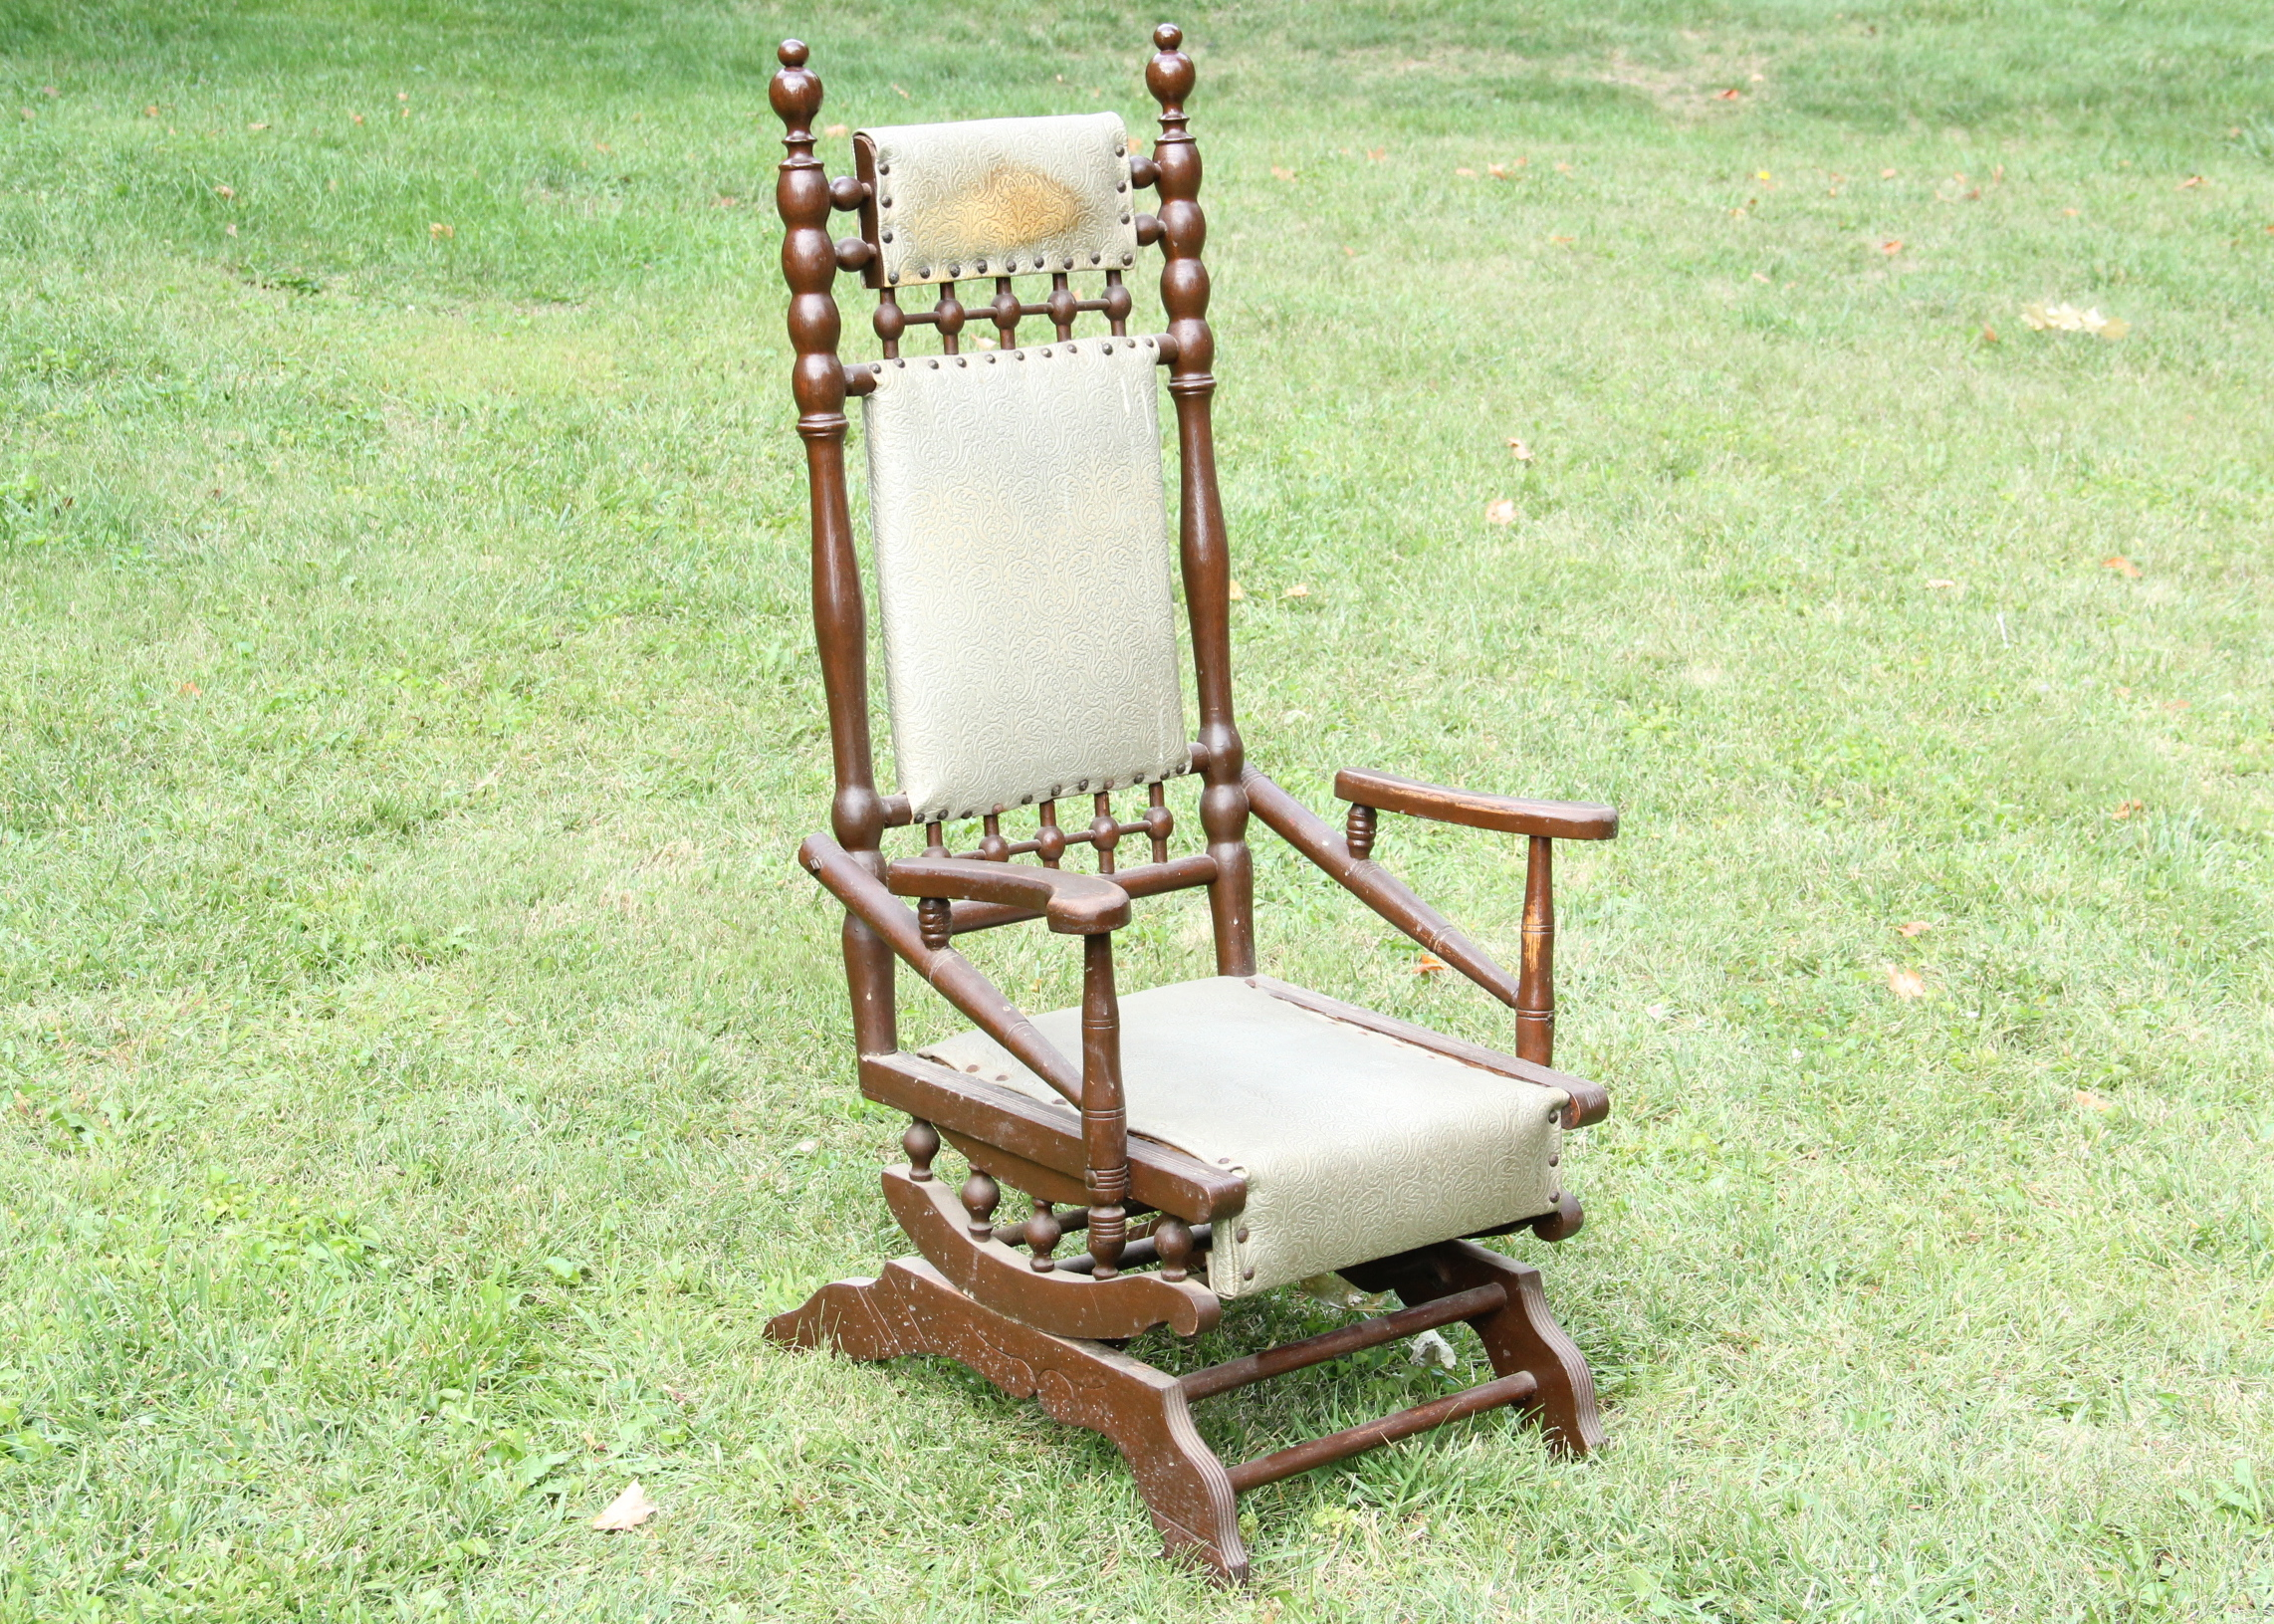 antique spring rocking chair Antique Renaissance Revival Spring Rocking Chair : EBTH antique spring rocking chair